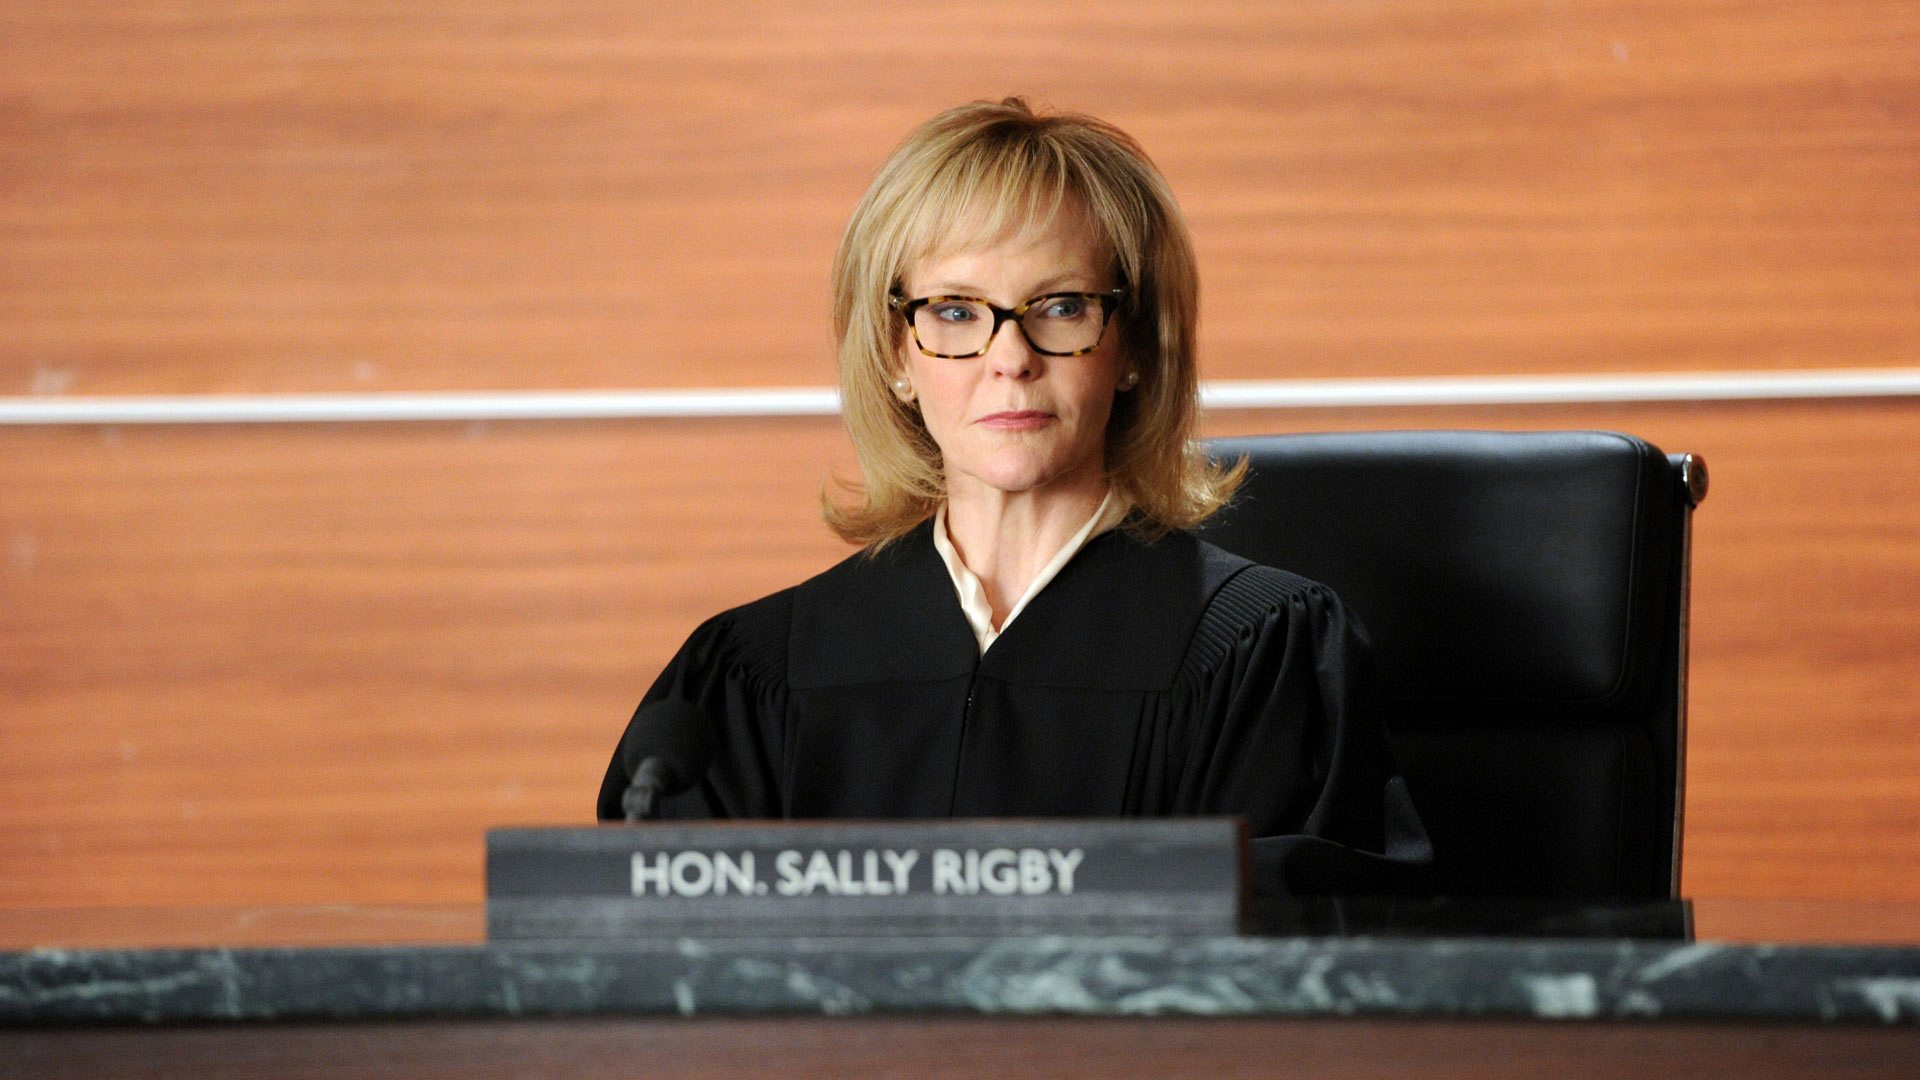 Judge Sally Rigby (Deborah Rush)